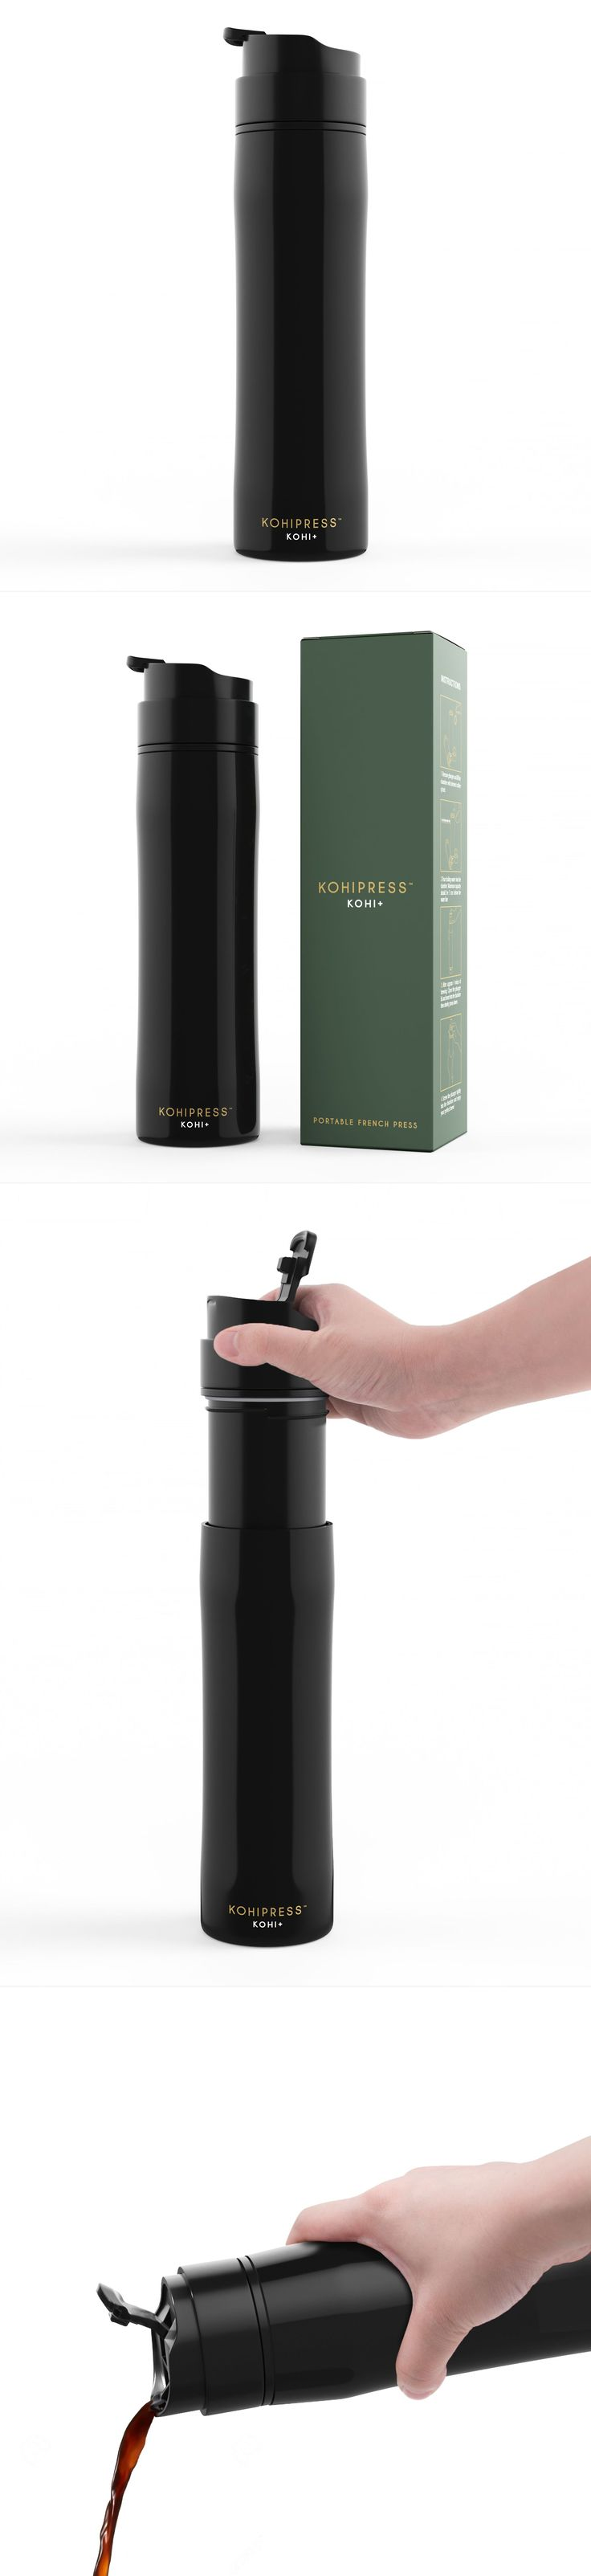 Presso pump 3D visualization: KohiPlus || #product #productdesign #packaging #packagingdesign #coffee #coffee #thermos #vacuumflask #3Drender #3Dcompositing #photorealistic #3D #coffeethermos